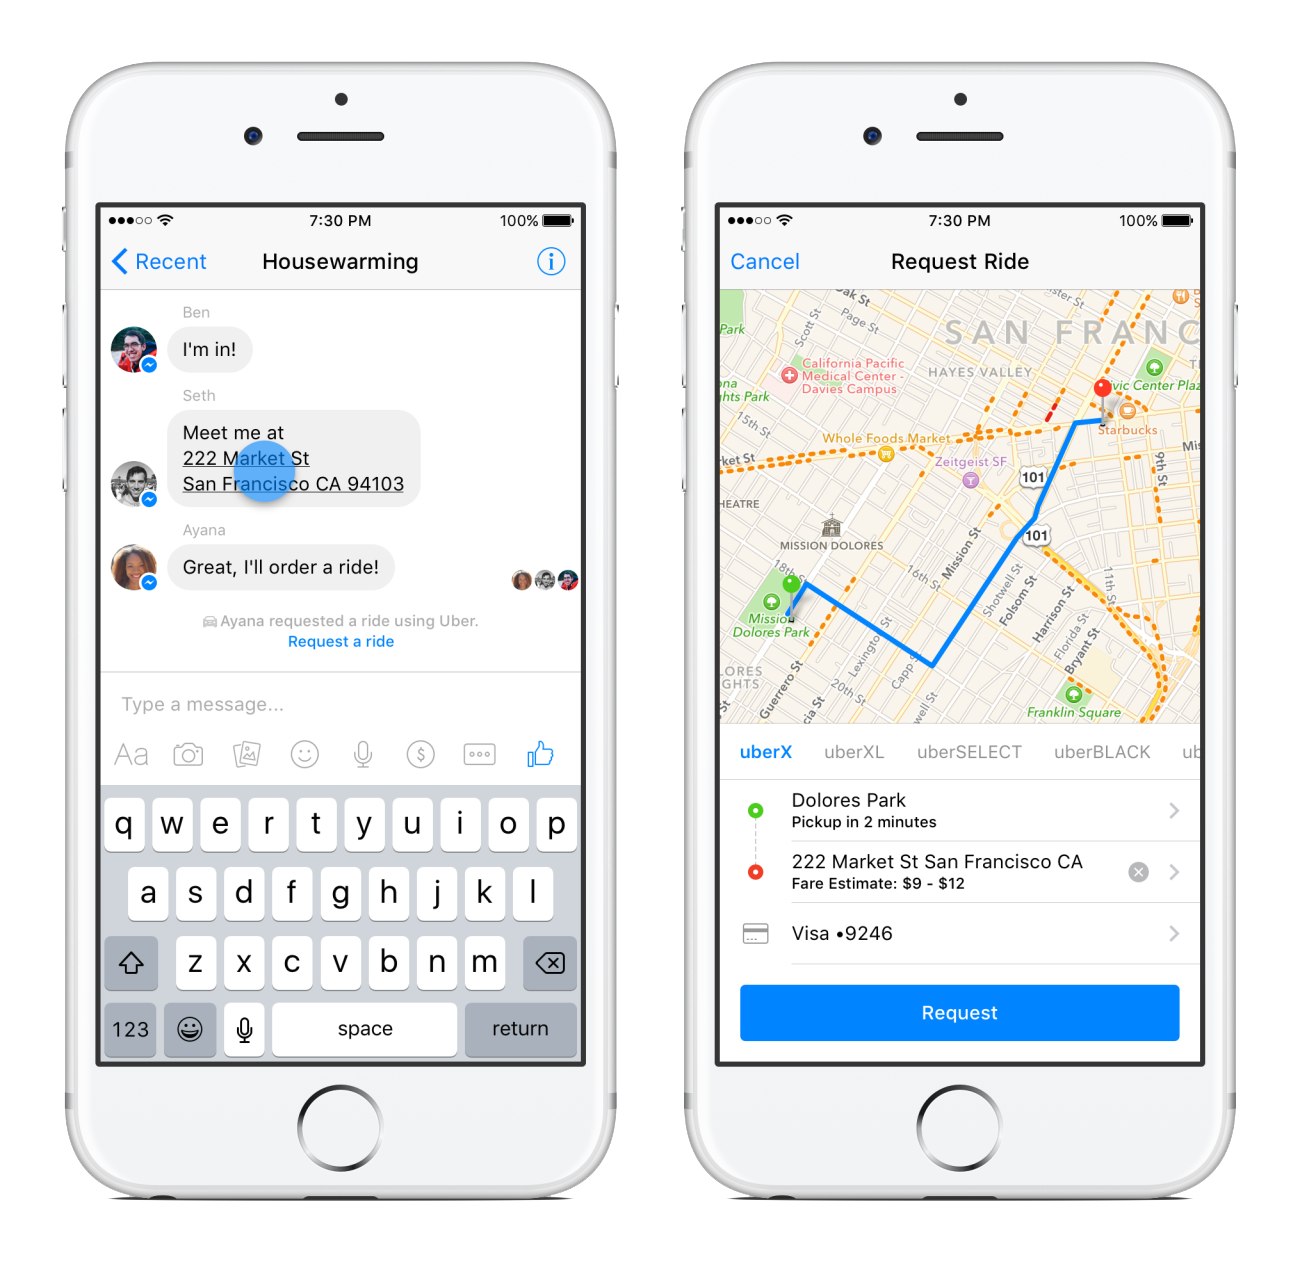 Uber Secure Integration with Facebook Messenger